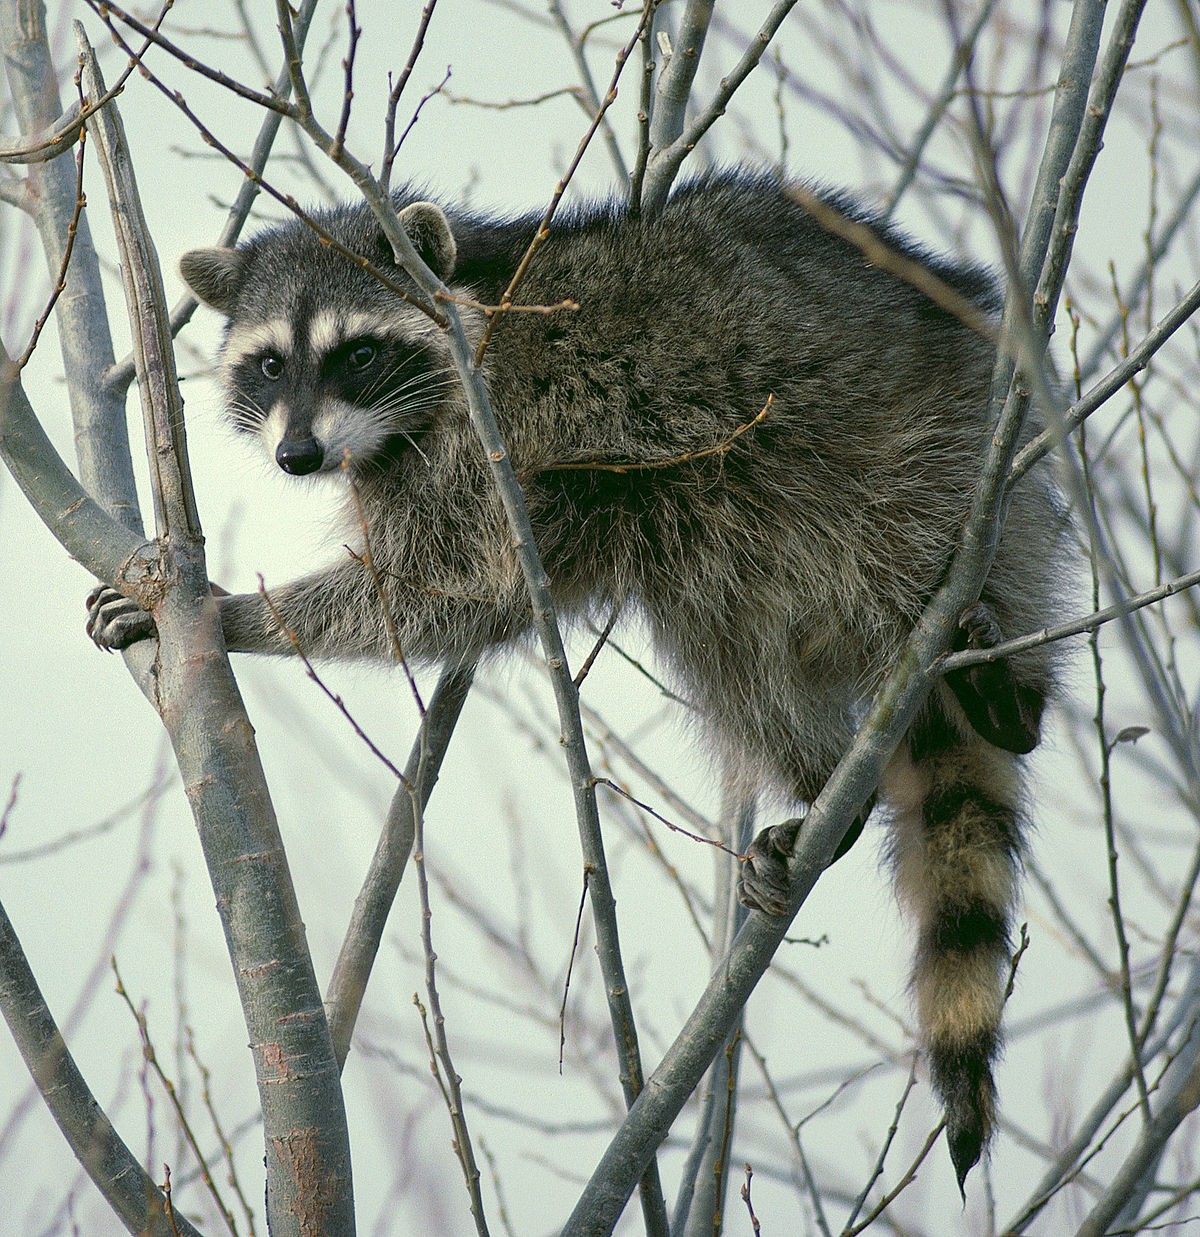 1200px-raccoon_climbing_in_tree_-_cropped_and_color_corrected.jpg